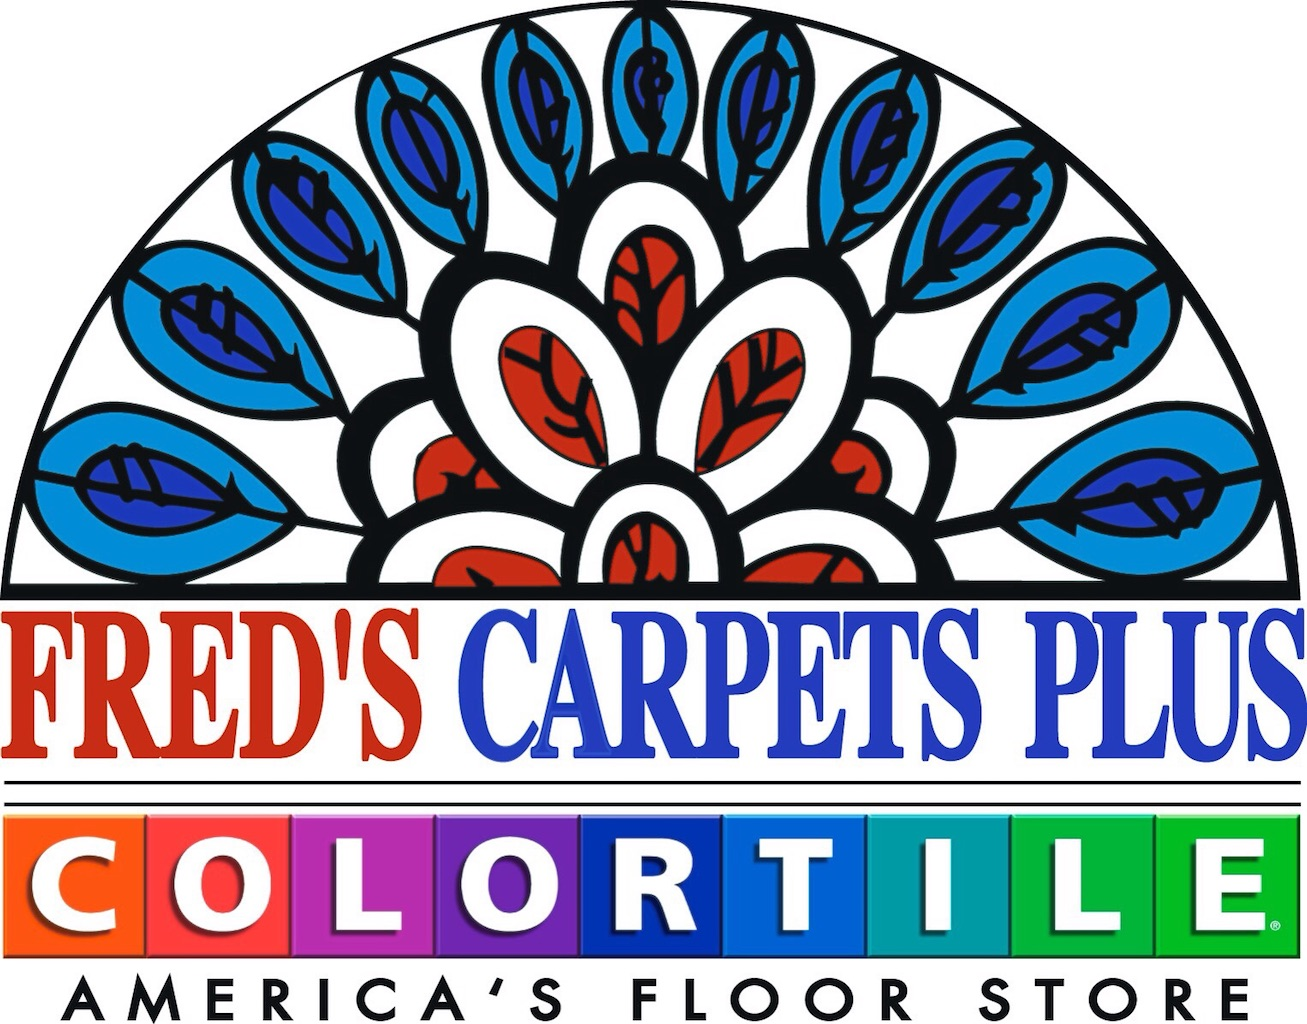 Fred's Carpets Plus - 2153 Torrance Blvd, Torrance, CA 90501